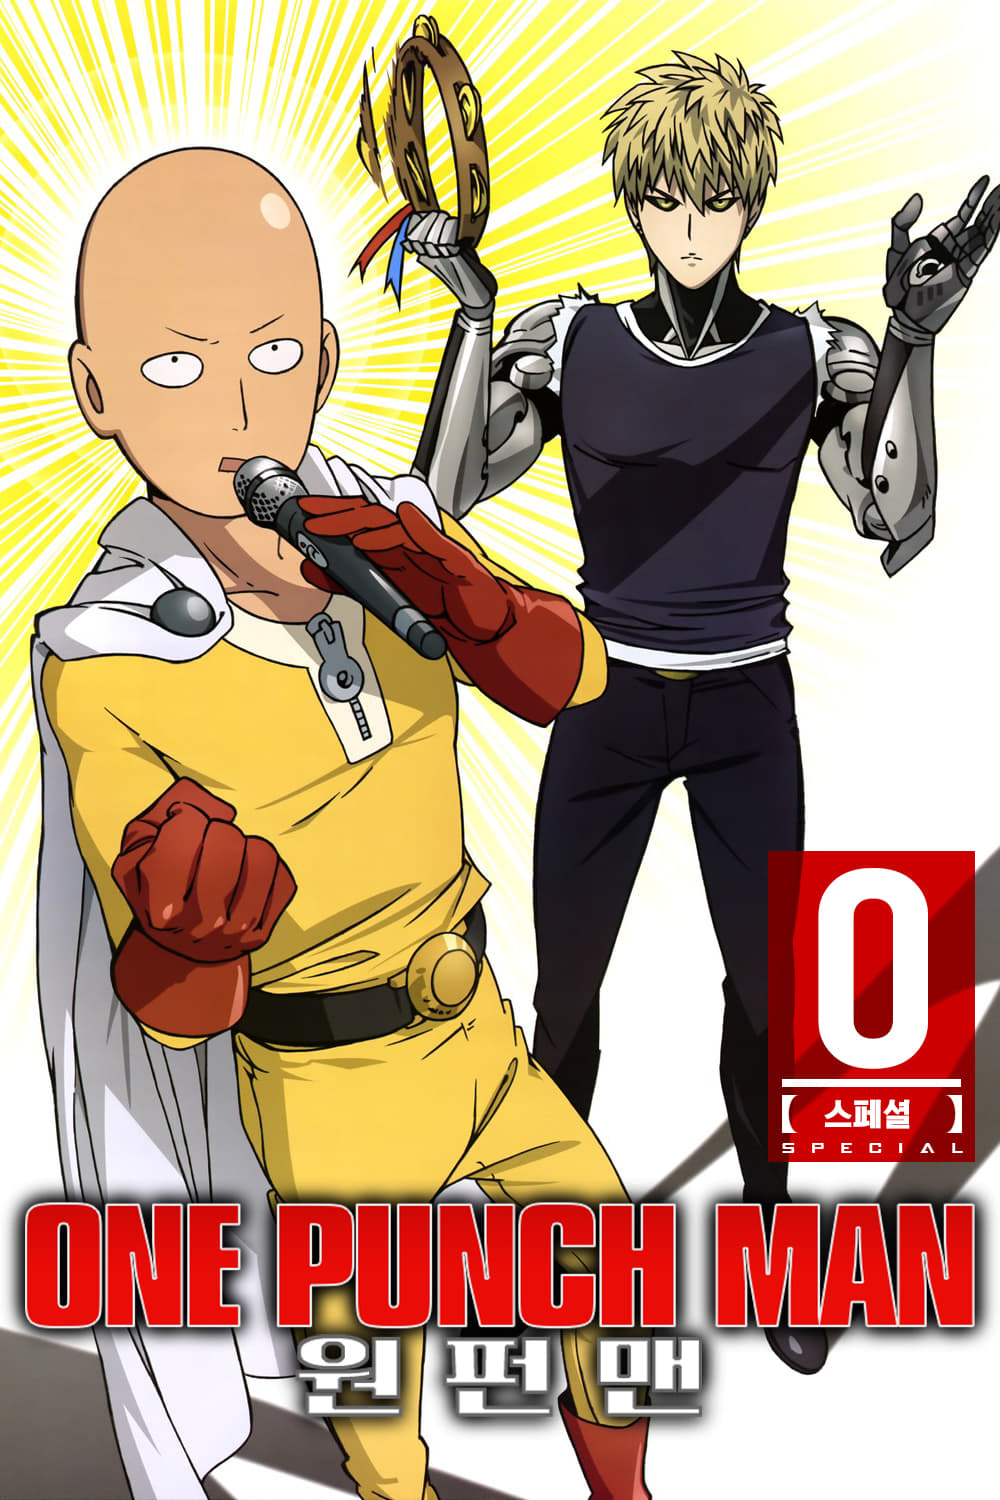 One Punch Man Season 0